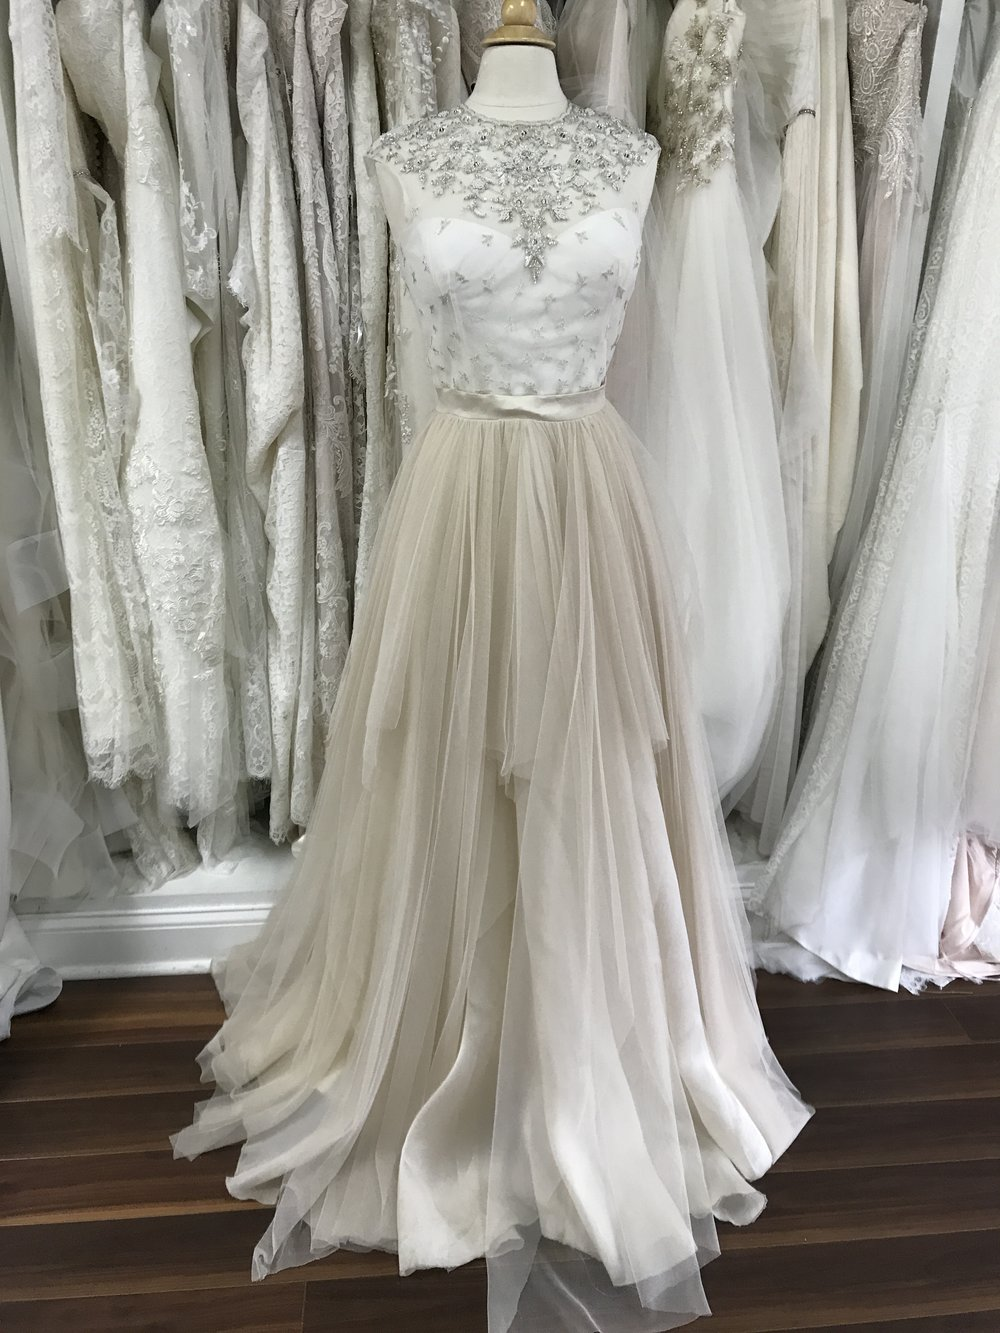 rebecca-schoneveld-savannah-savannah weddings-weddings-indie-bride-colored dress-wedding planner-ivory and beau-florist-separates-boutique-sweetheart-asymmetrical-savannah-veil-champagne-tulle-gold-beaded-high neckline-illusion neckline-silver.jpg